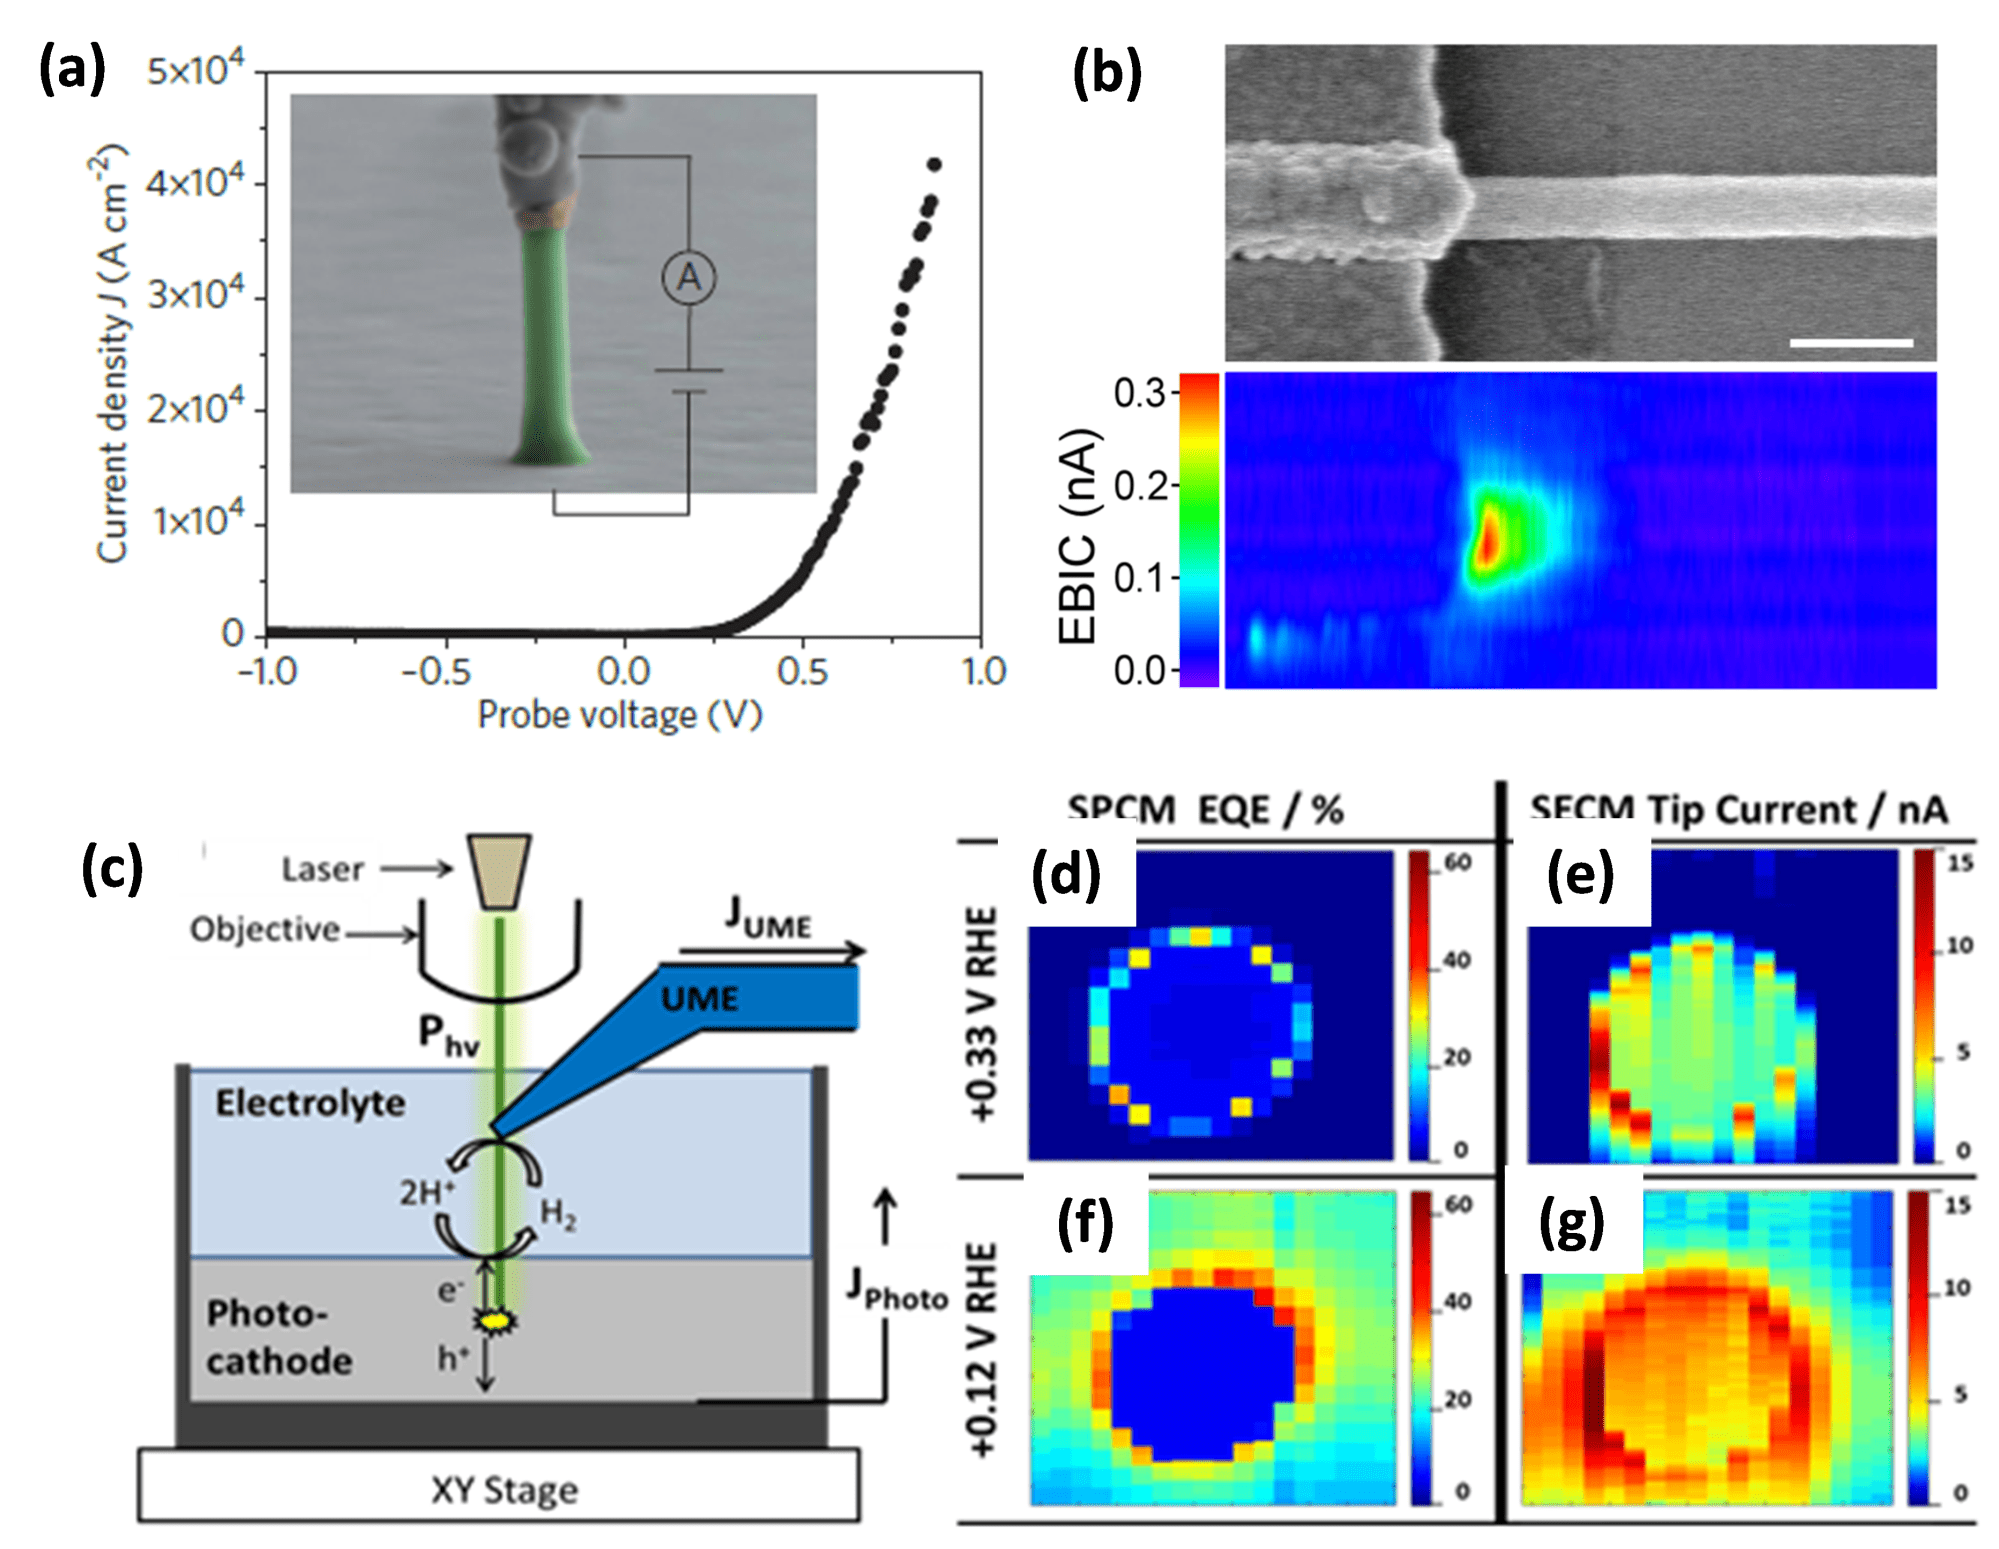 hight resolution of is contacted with a nanomanipulator probe b ebic map of a metal si nanowire junction c schematic of a cell for simultaneous spcm and secm measurements